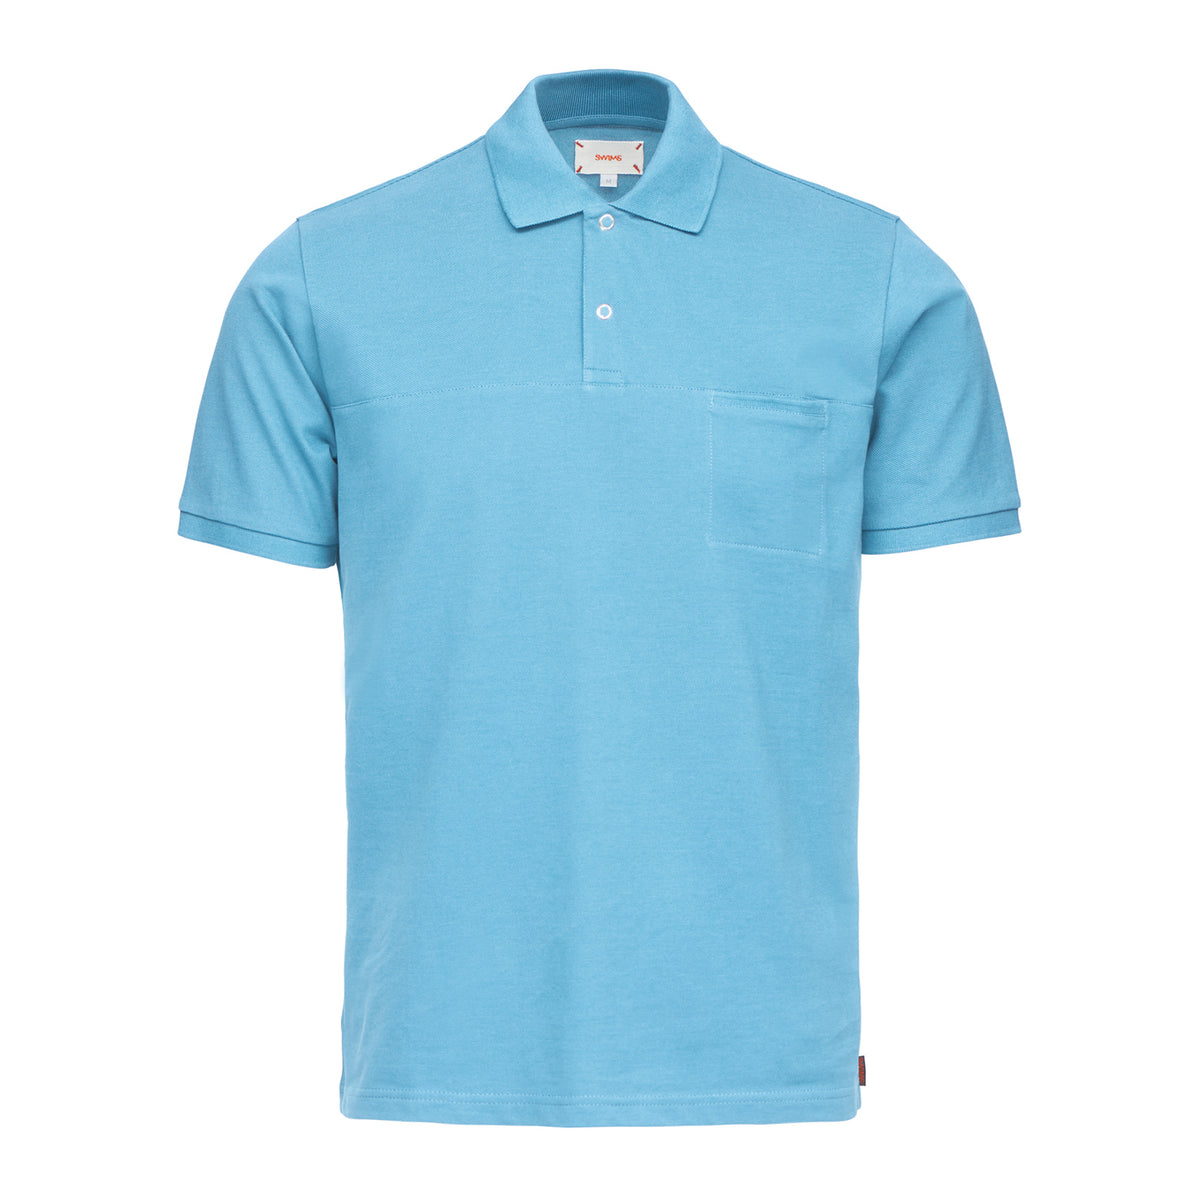 Breeze Polo Shirt - background::white,variant::Norse Blue